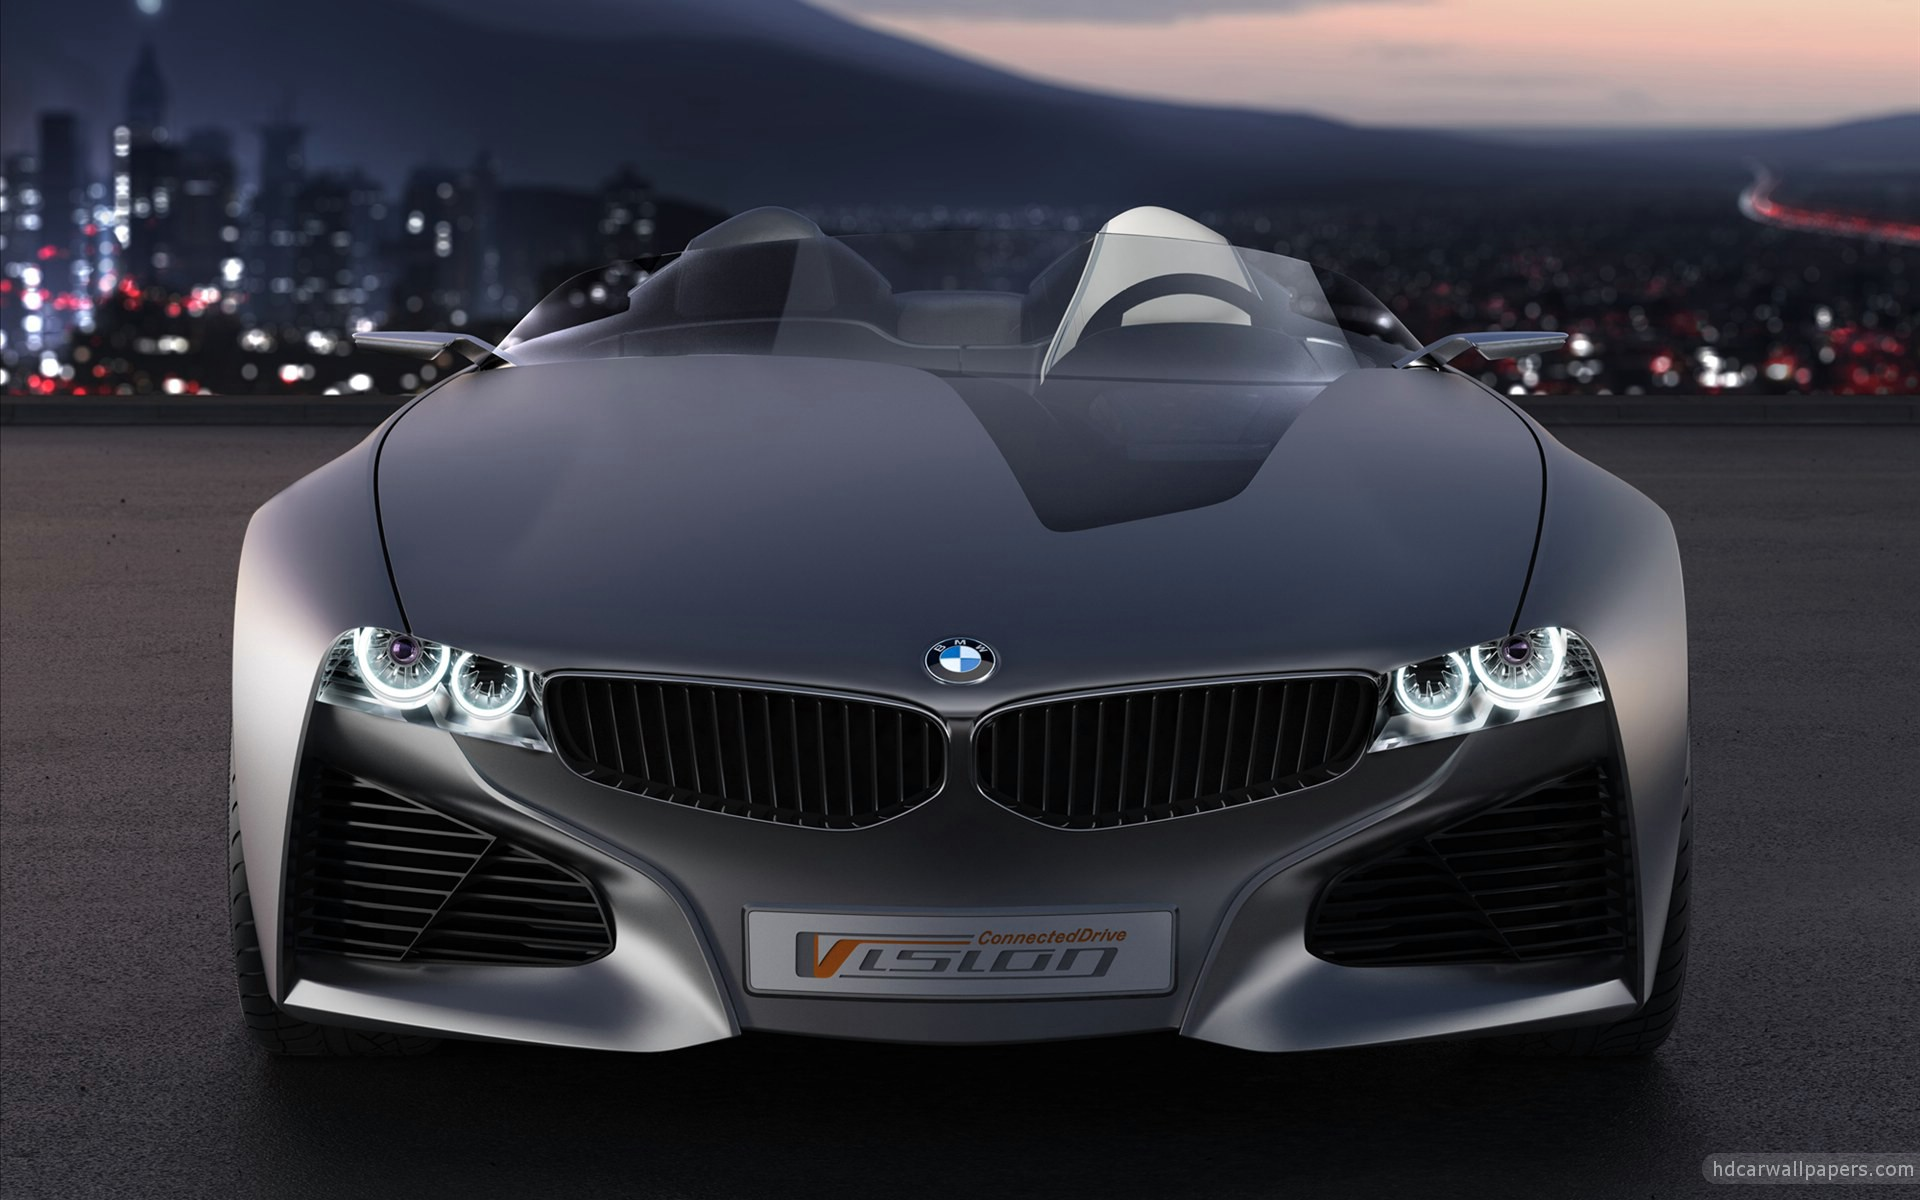 2011 Bmw Vision Connected Drive Concept 5 Wallpaper Hd